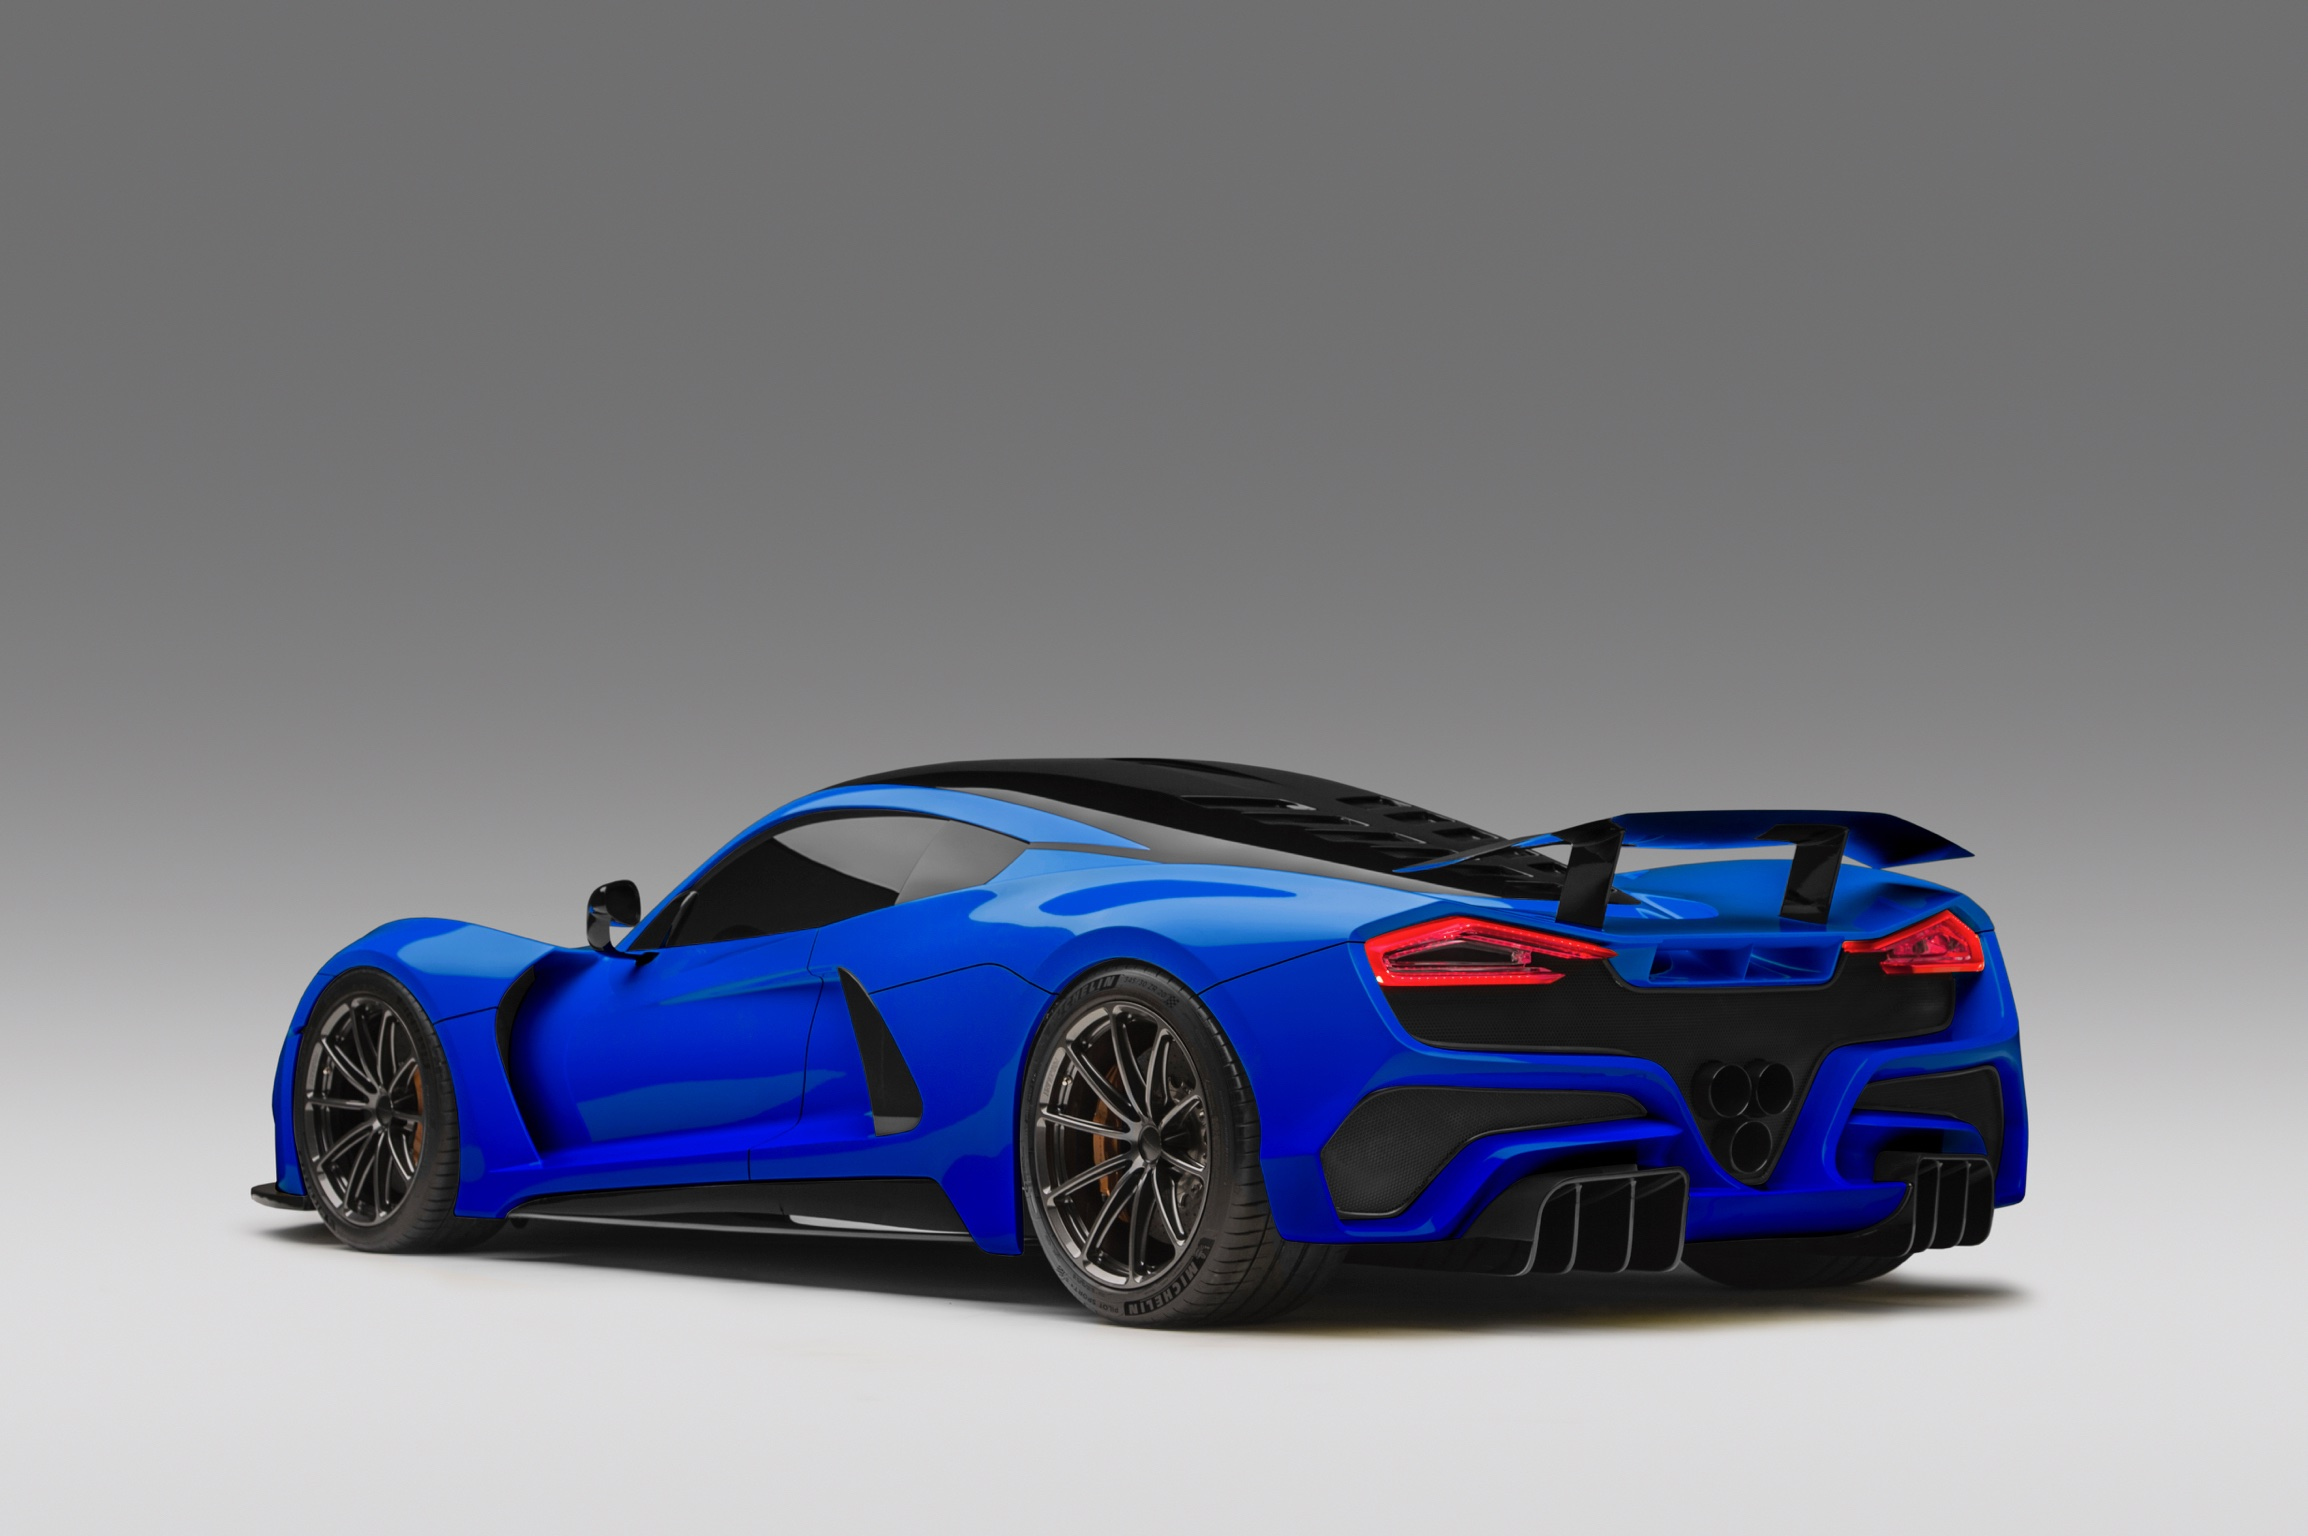 Hennessey Venom F5 Blue Dark Rear